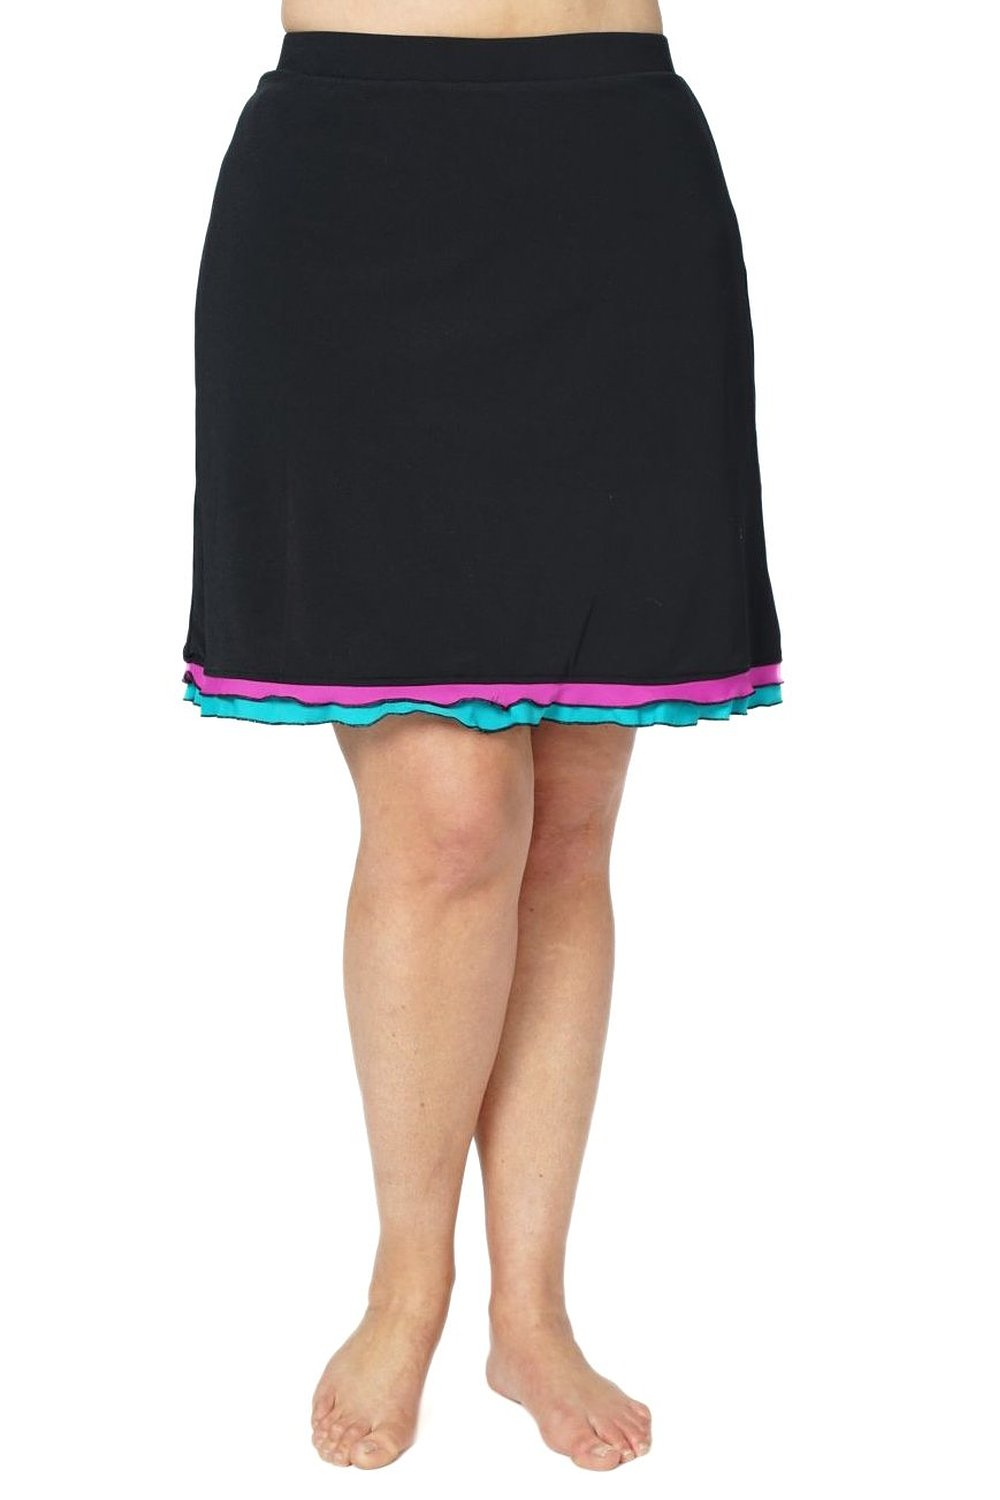 d7aa56a227 Cheap Aqua Swim Skirt, find Aqua Swim Skirt deals on line at Alibaba.com